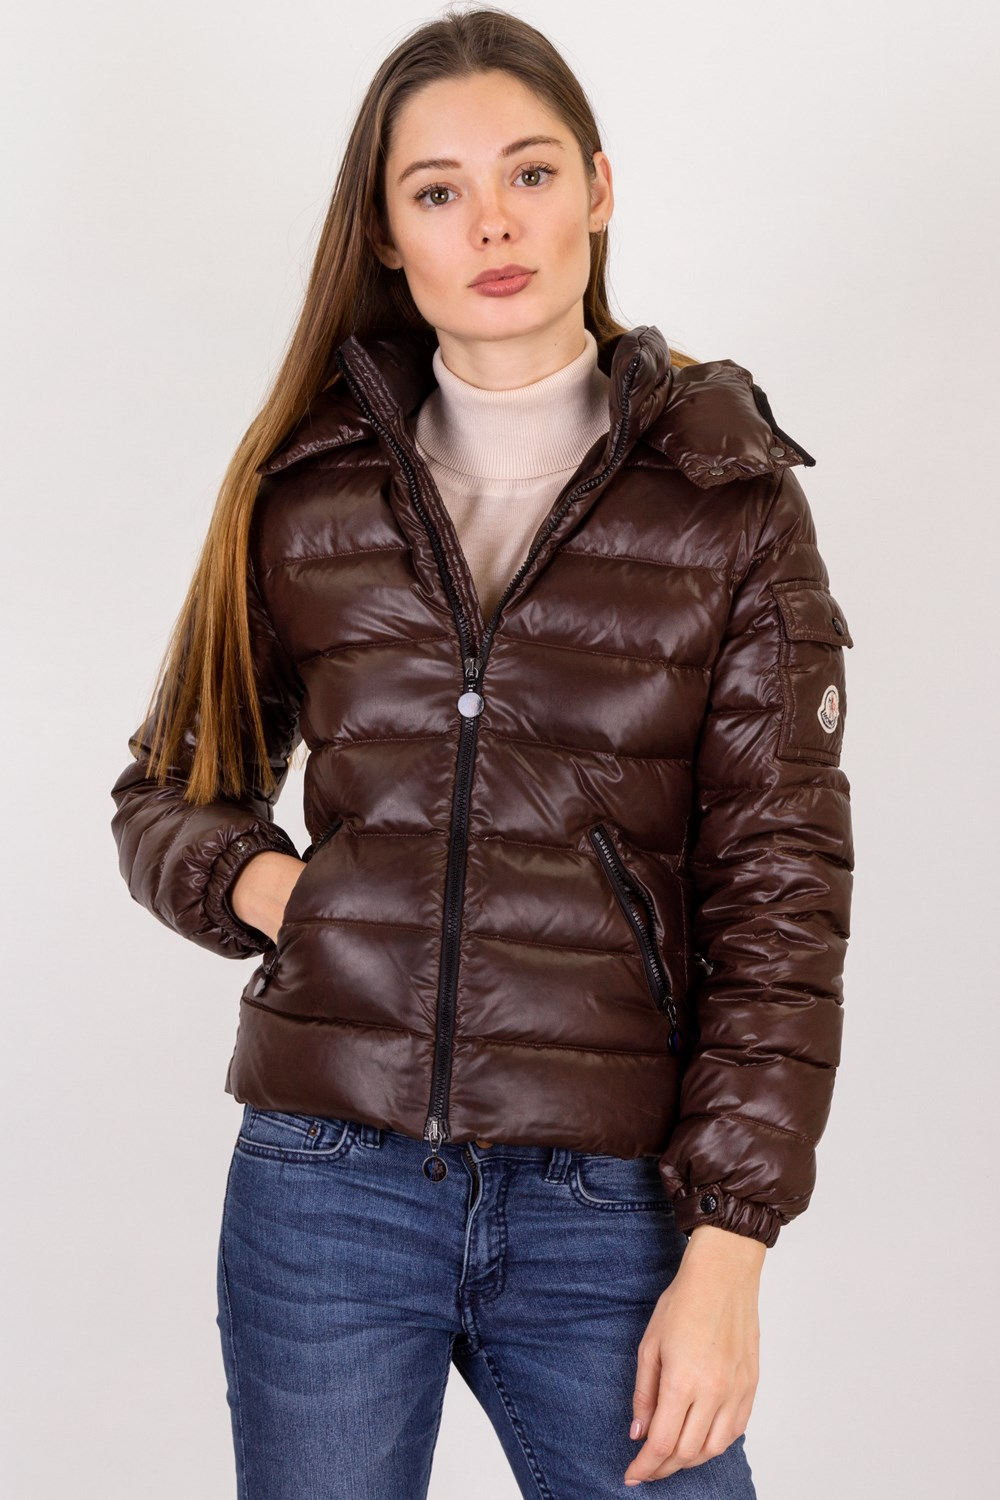 96379562a703 Brown Puffer Down Jacket   Size  12 ans - Fit for adults  XS, Jackets,  Outerwear, Clothing, Starbags Products, Starbags.gr